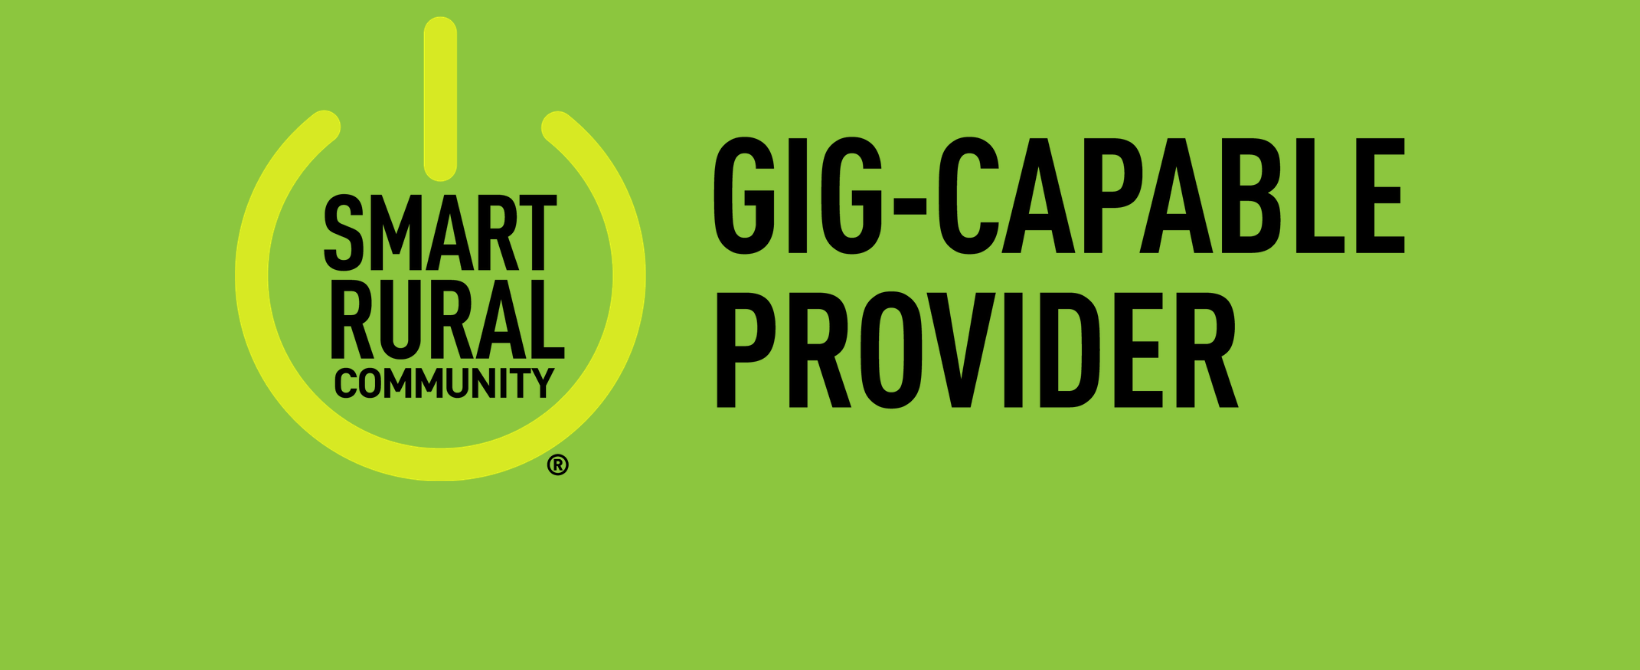 Gig-Capable Provider